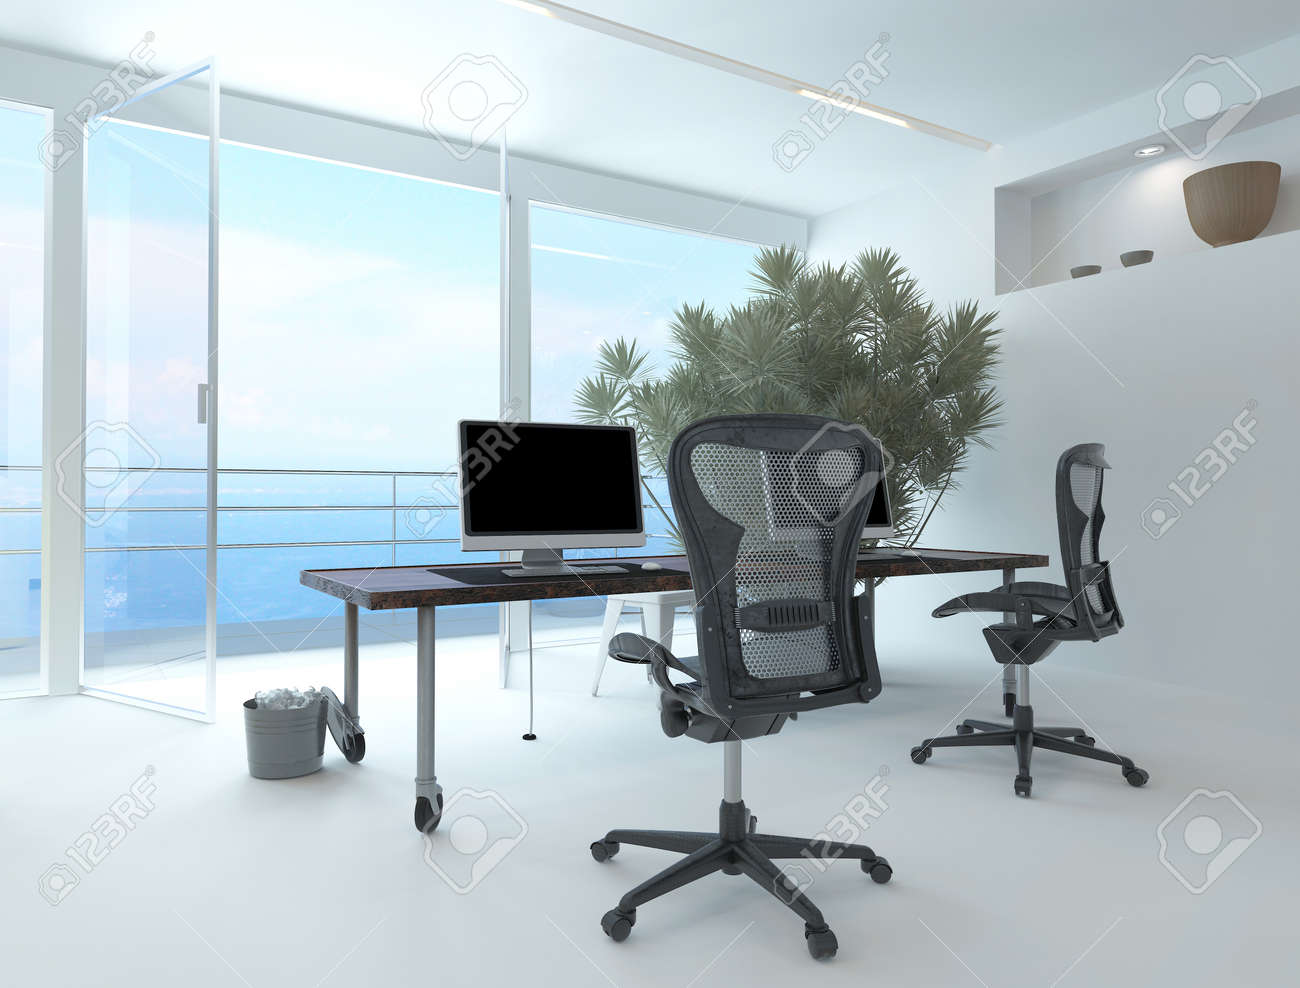 Modern Waterfront Office Interior With A Computer Workstation And Chairs In Front Of Large Floor